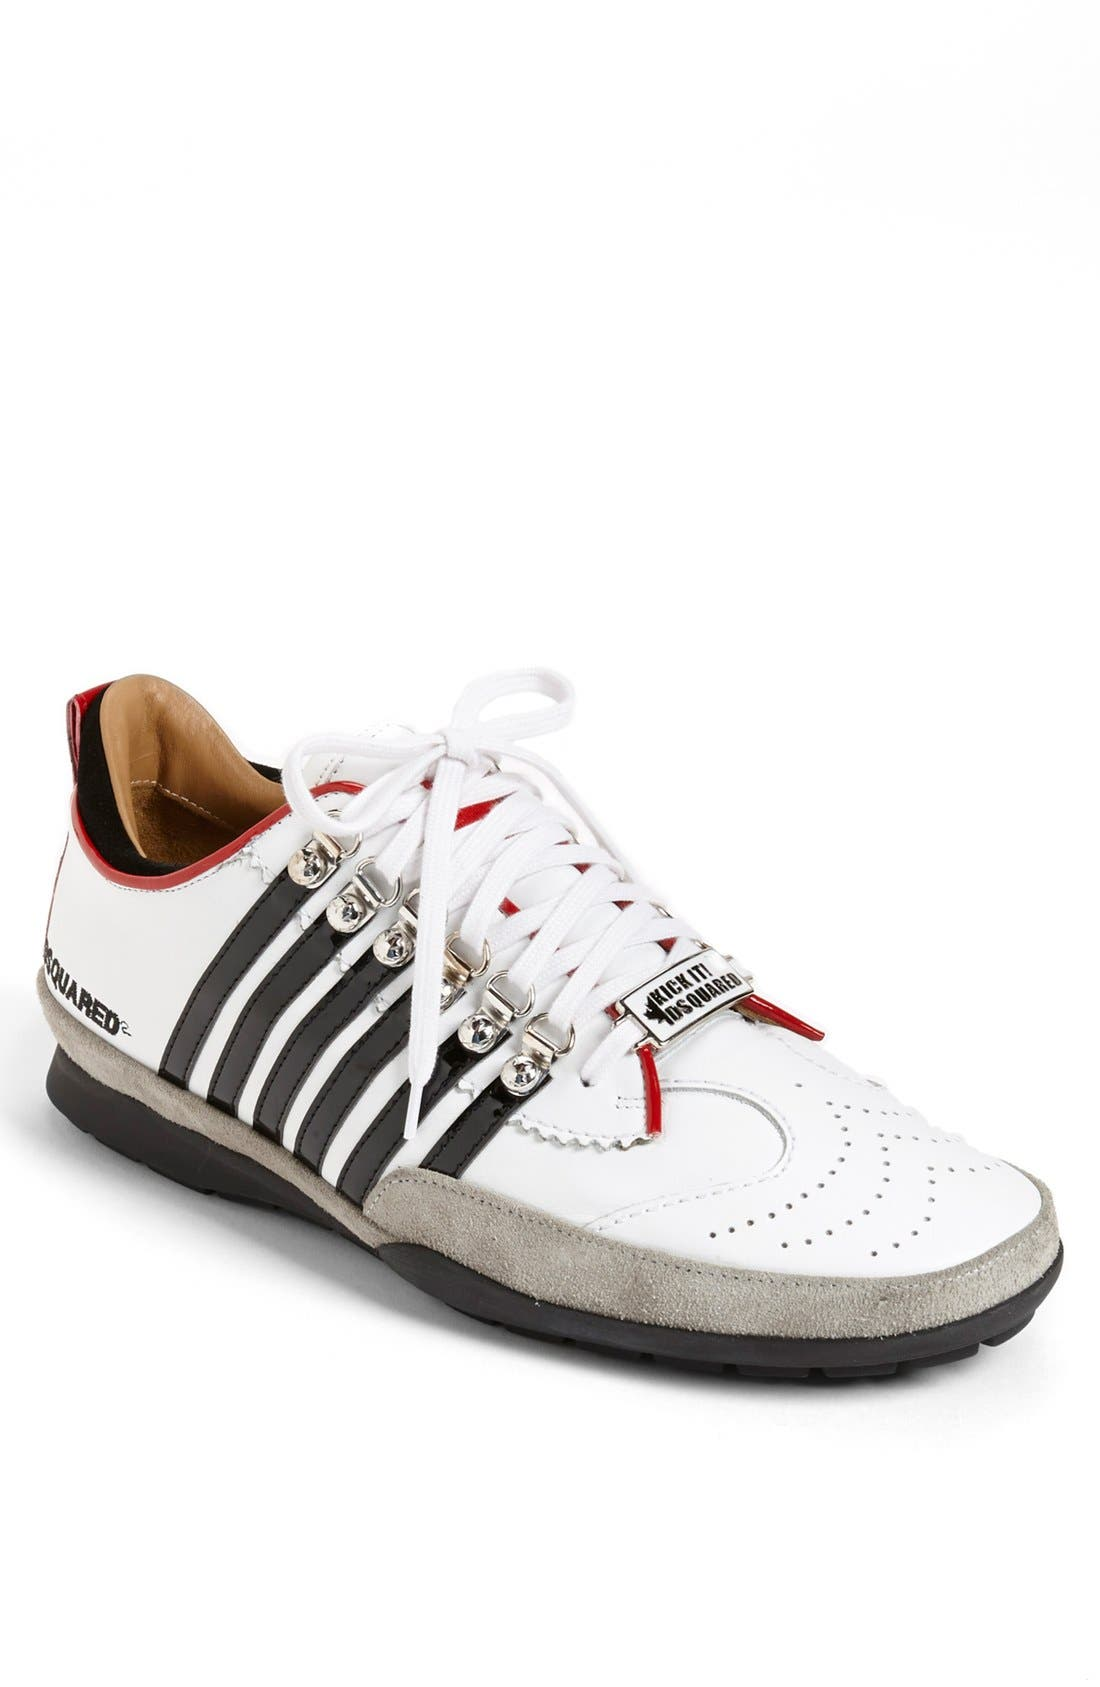 Alternate Image 1 Selected - Dsquared2 '251' Sneaker